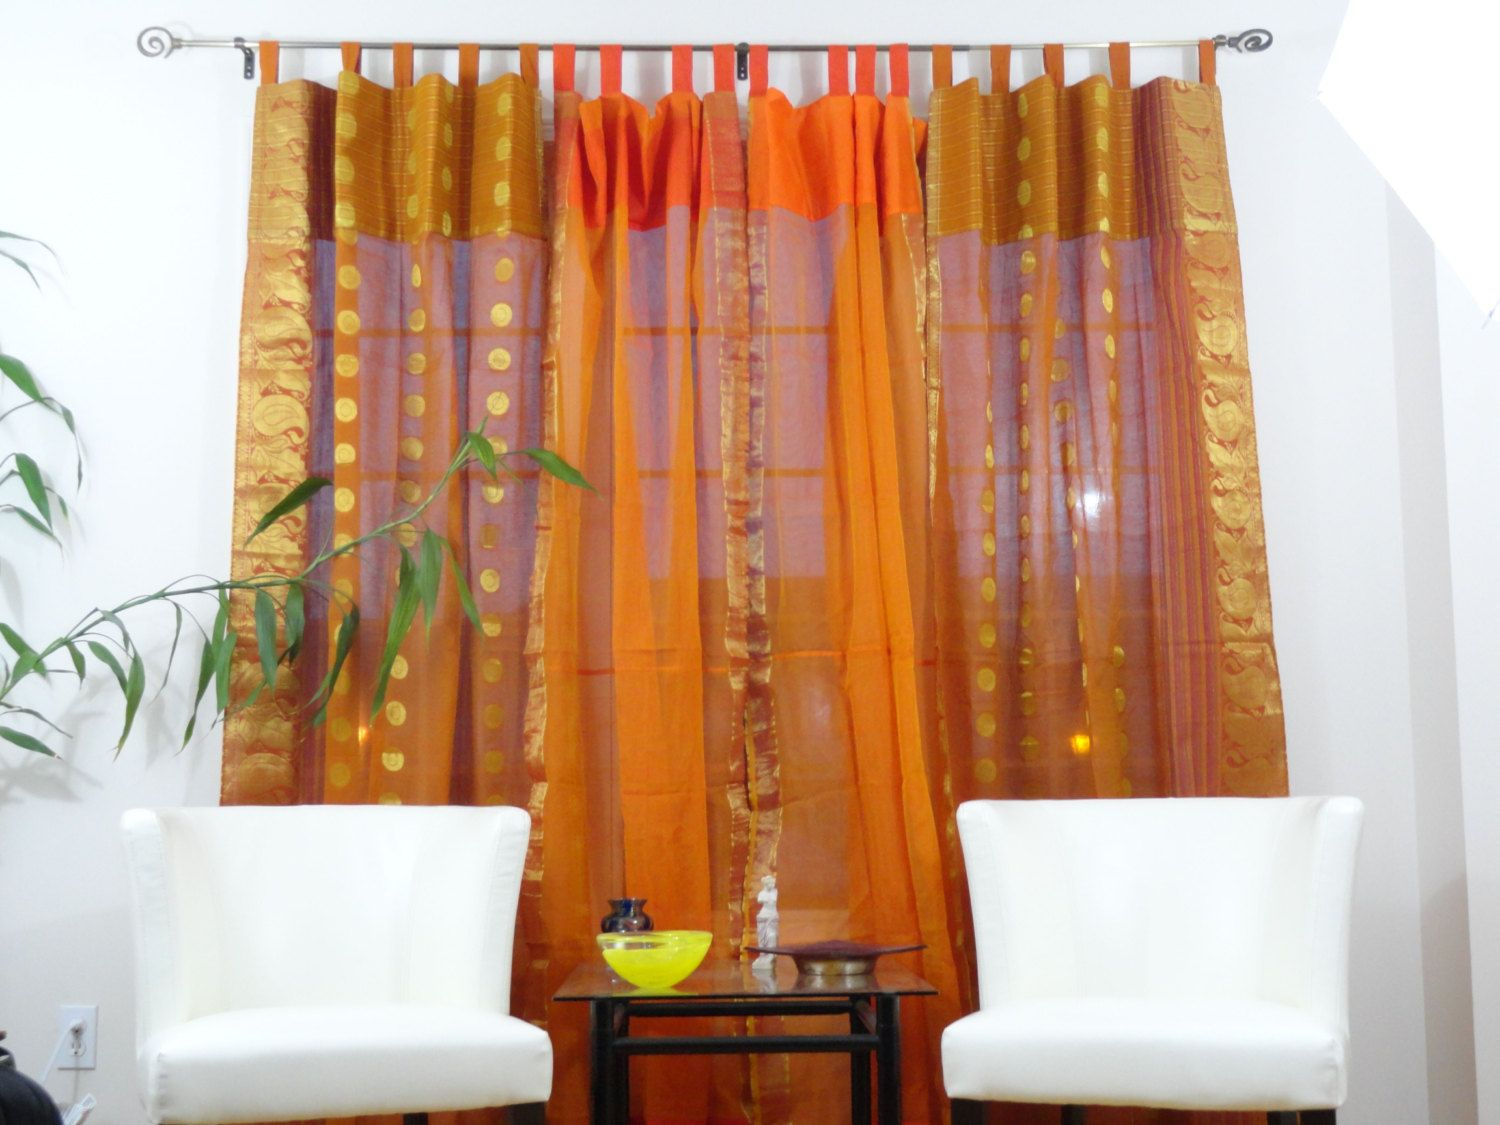 living room window valance ideas%0A Window curtains  indian  ethnic custom cotton silk drapes or valences   Window brown orange ethnic curtains  home decor idea  From Artikrti